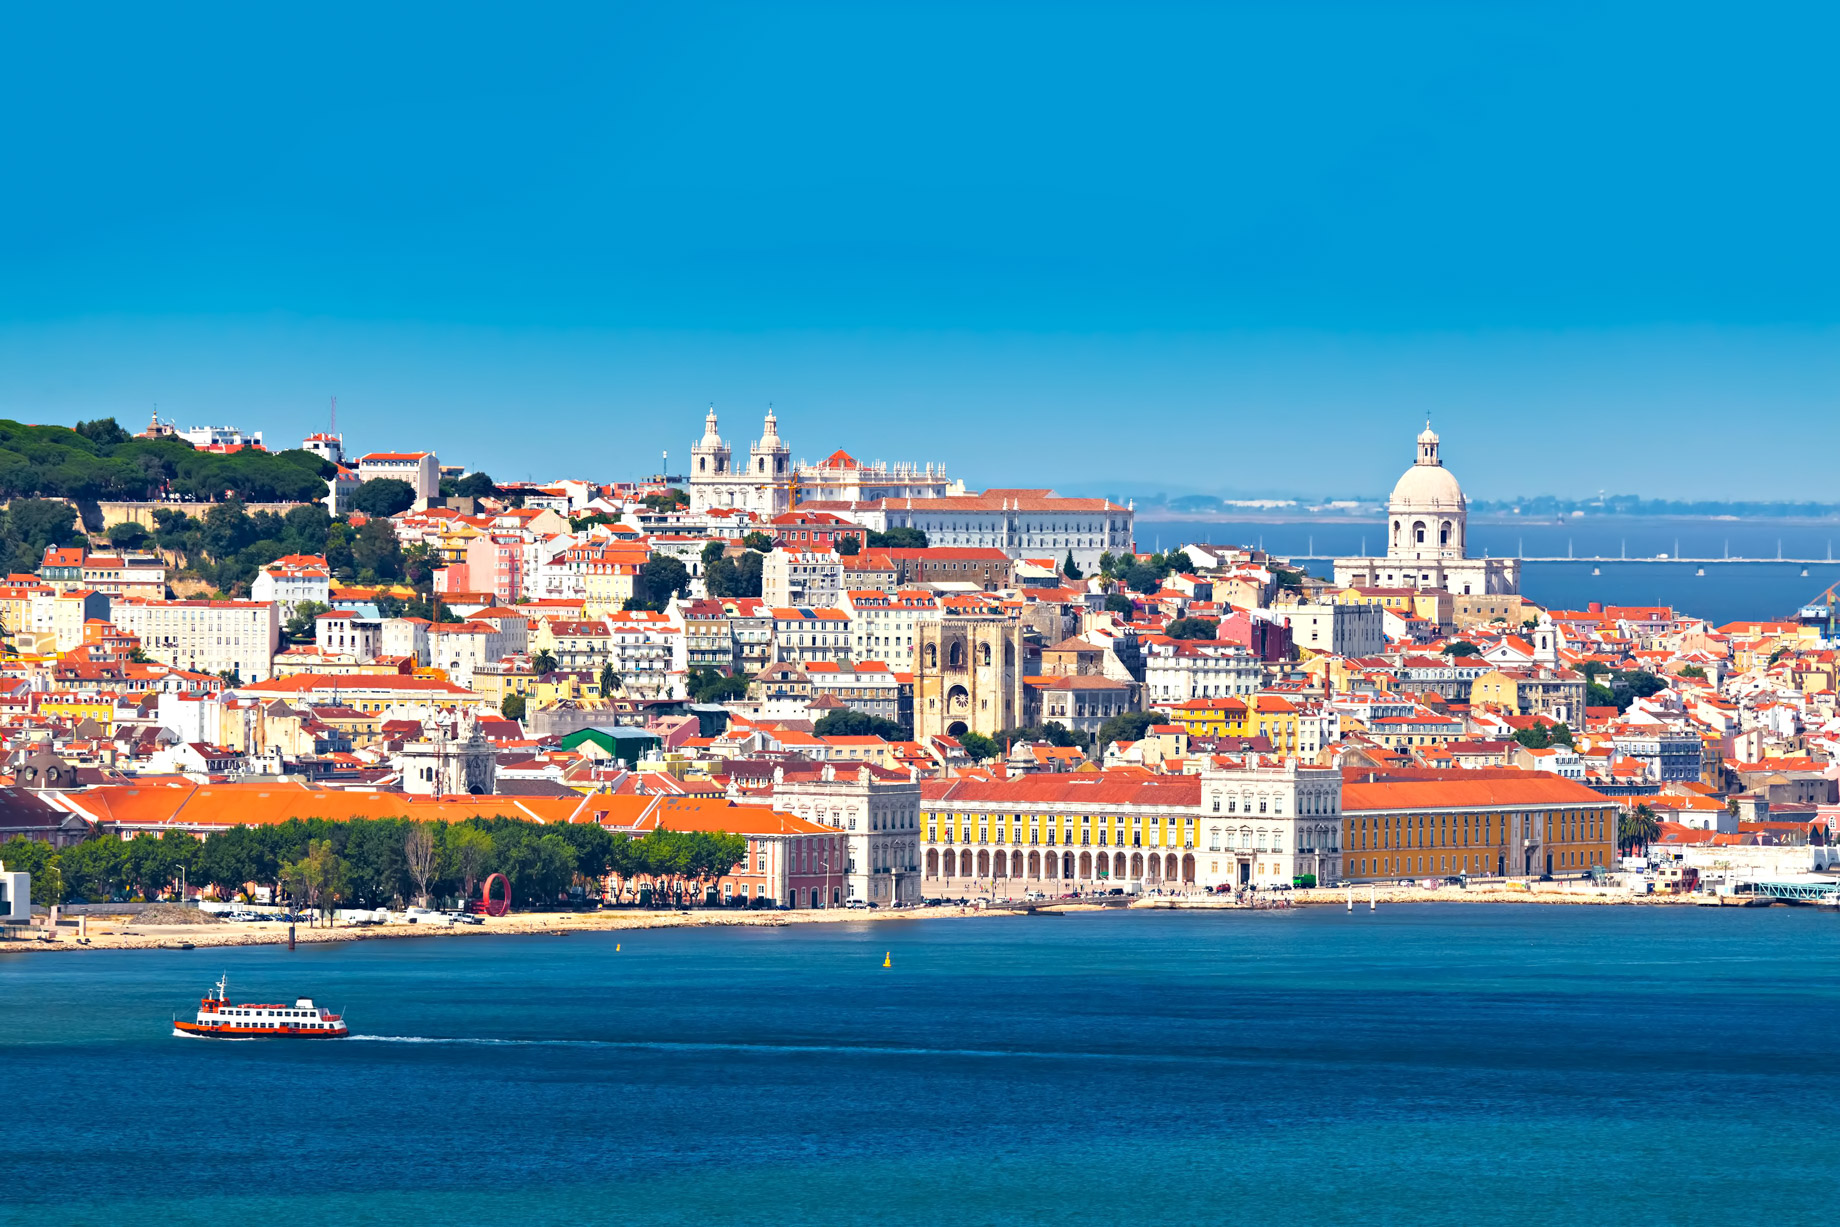 Lisbon, Portugal - Top 5 European Countries for UK Pensioners Retiring Abroad